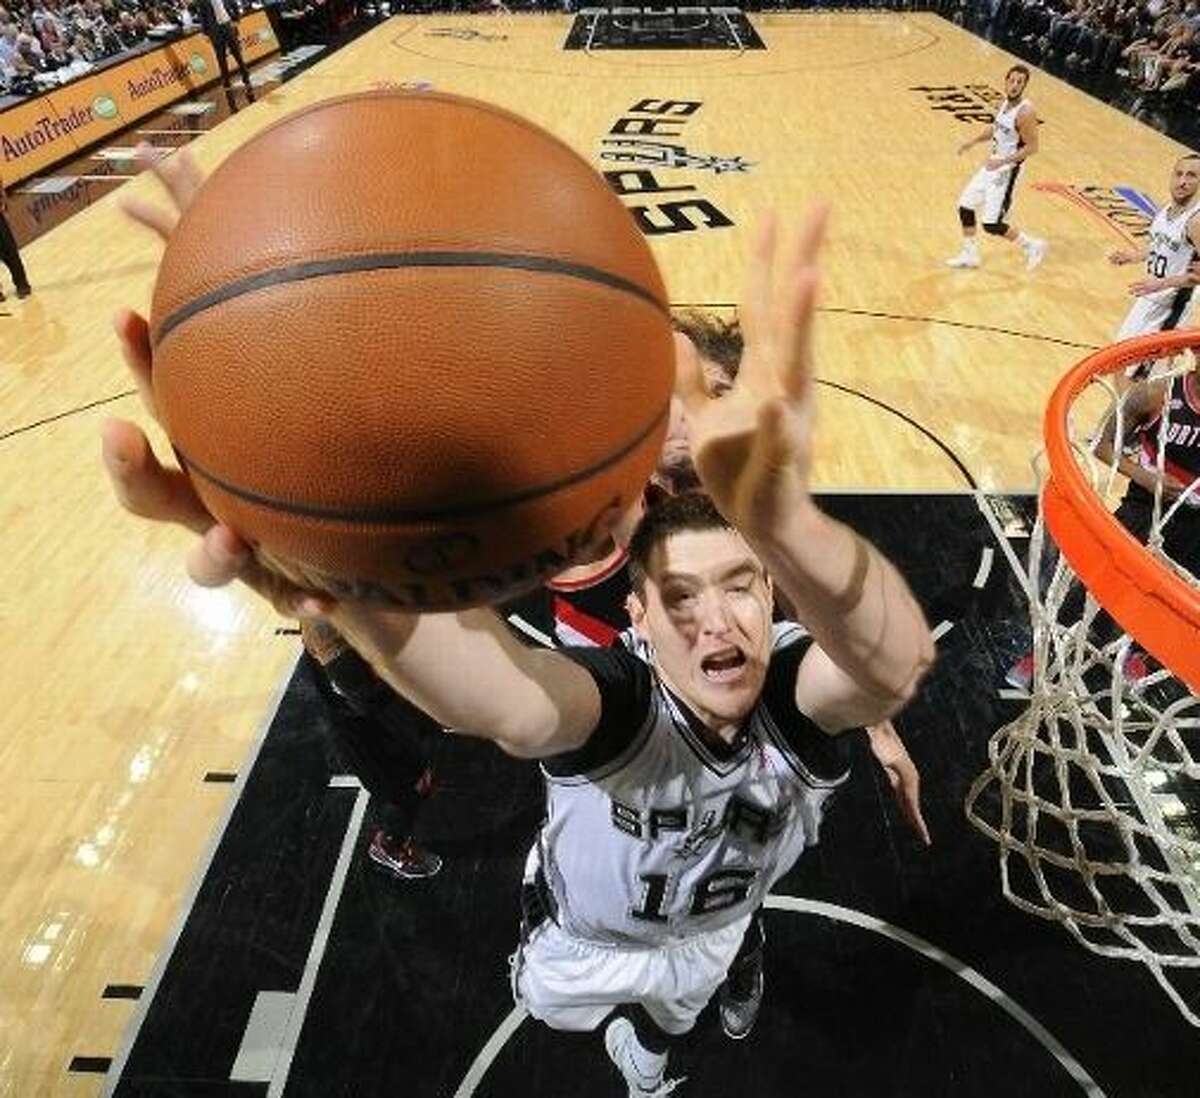 Aron Baynes will try to help contain Grizzlies' big men Marc Gasol and Zach Randolph.